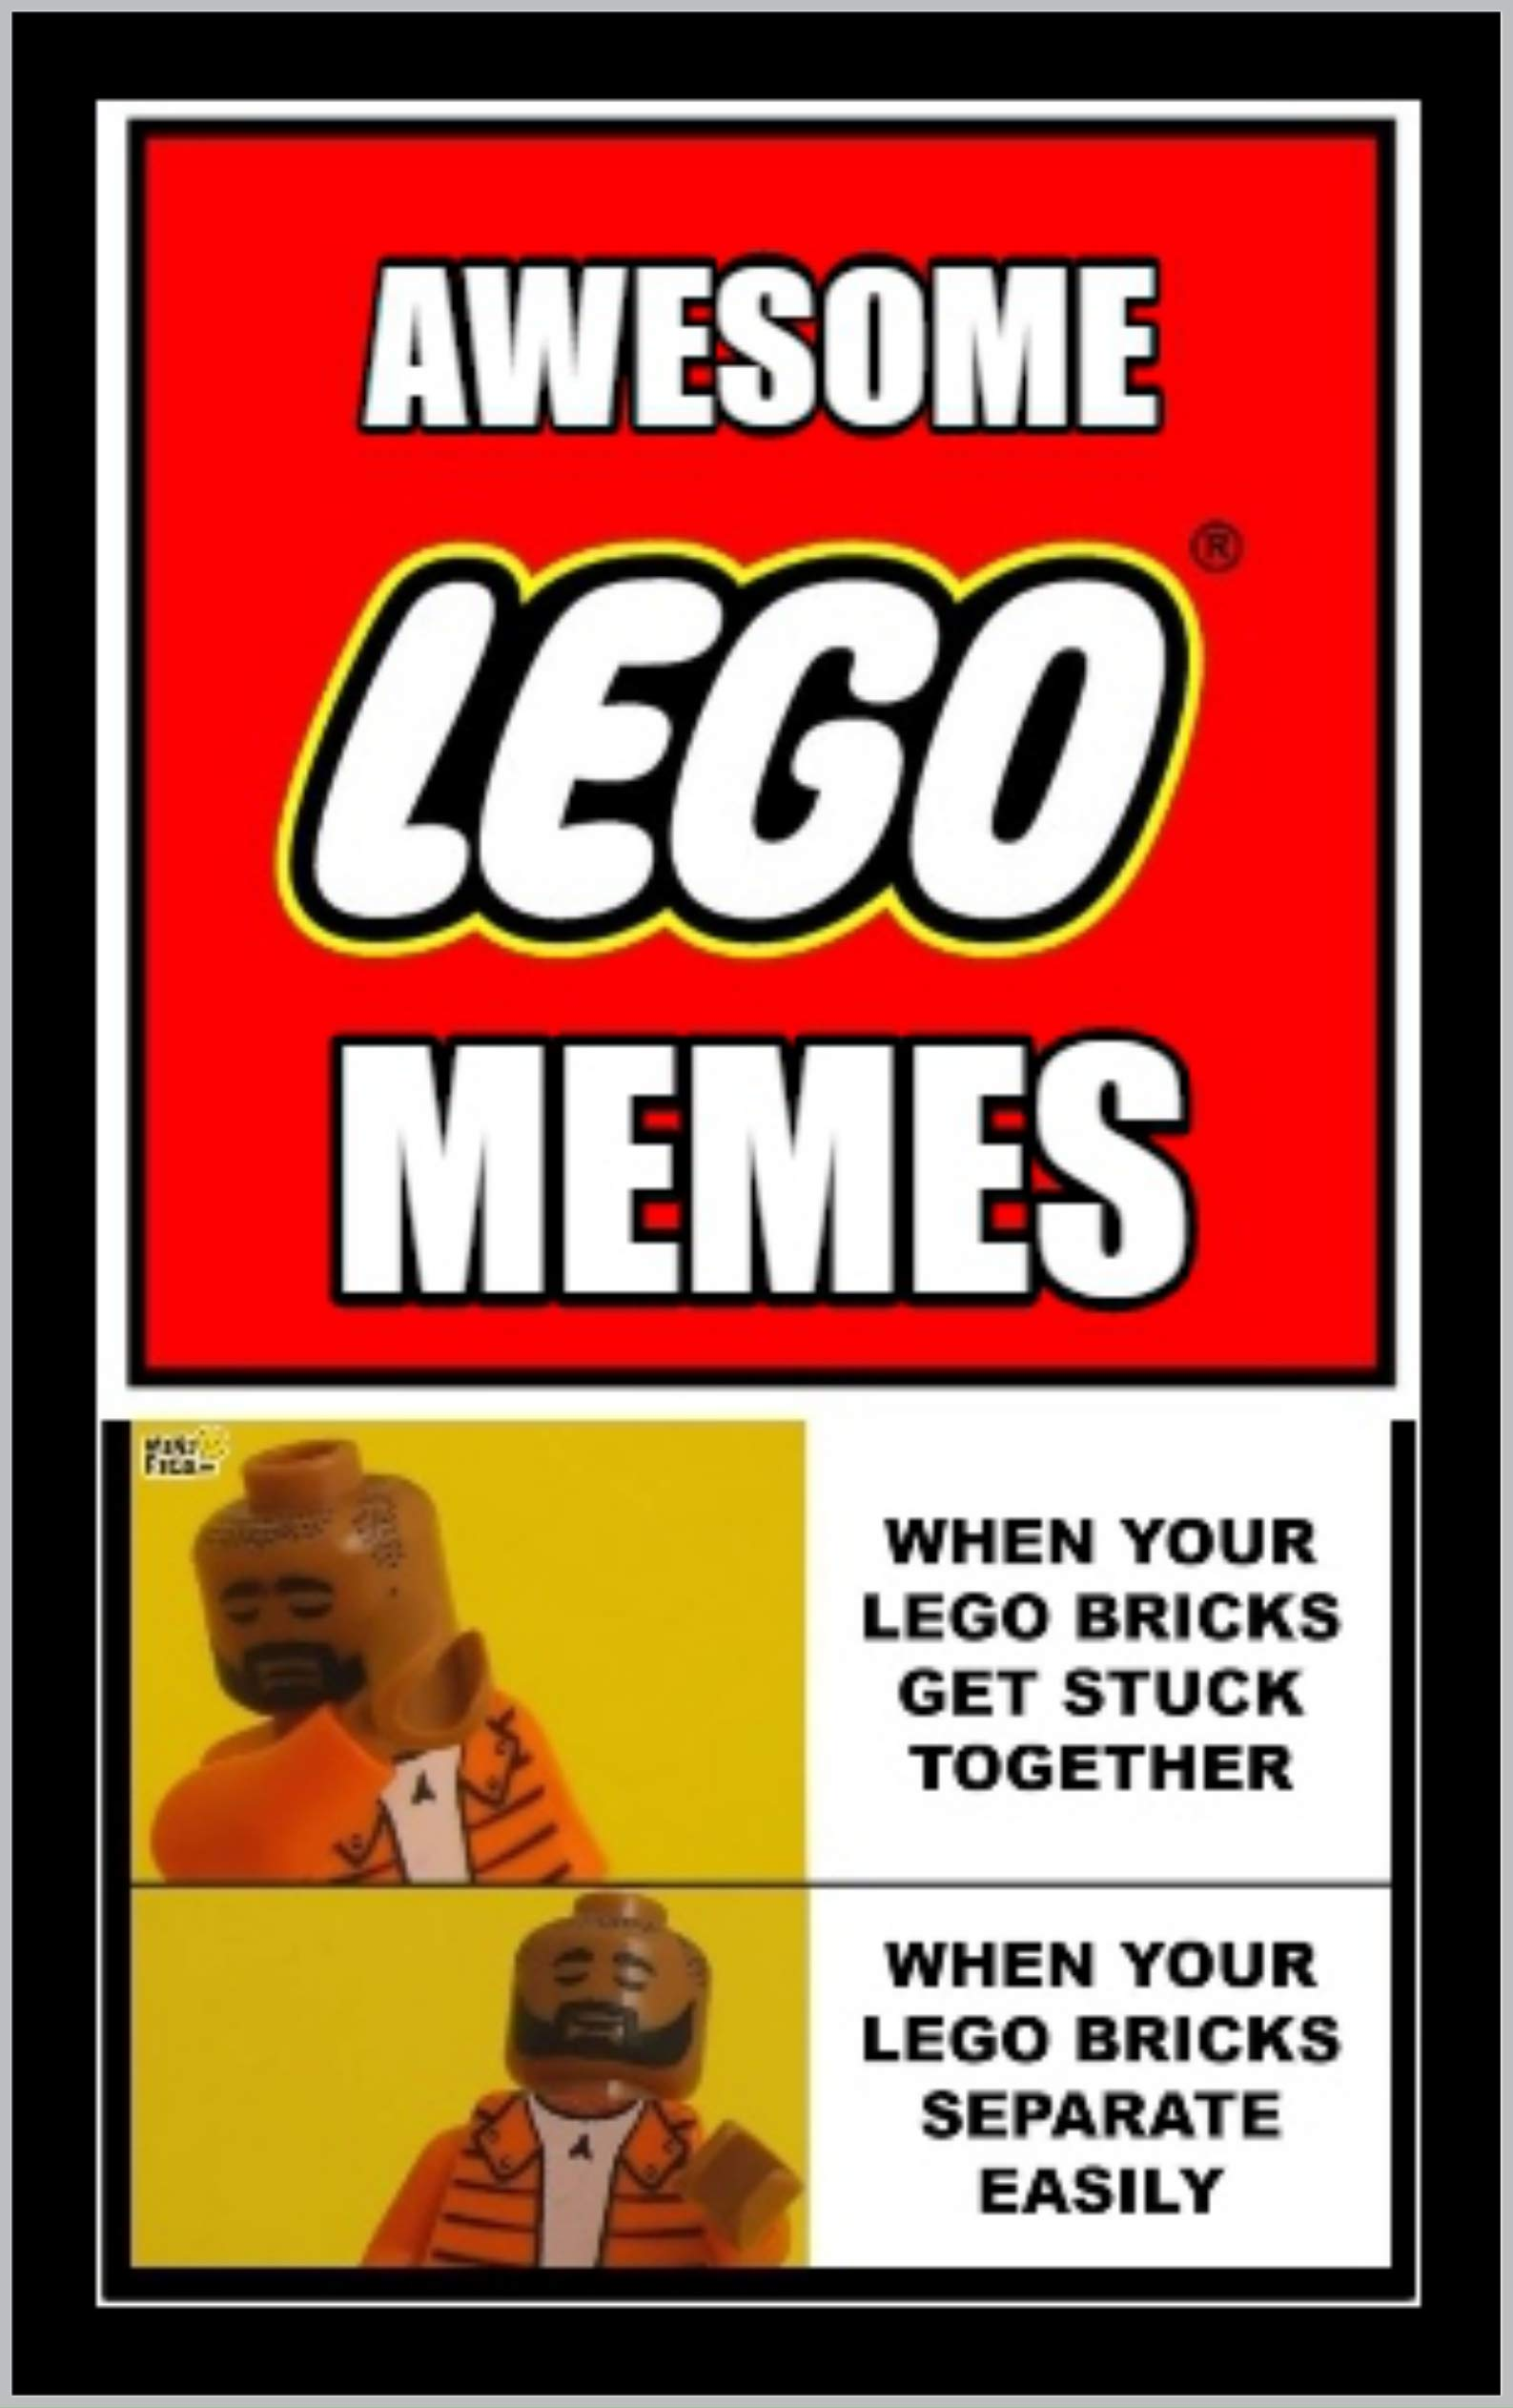 LEGO: Hilarious Lego M£M£S, Jokes And Loads Of Other Awesome Internet Comedy Stuff